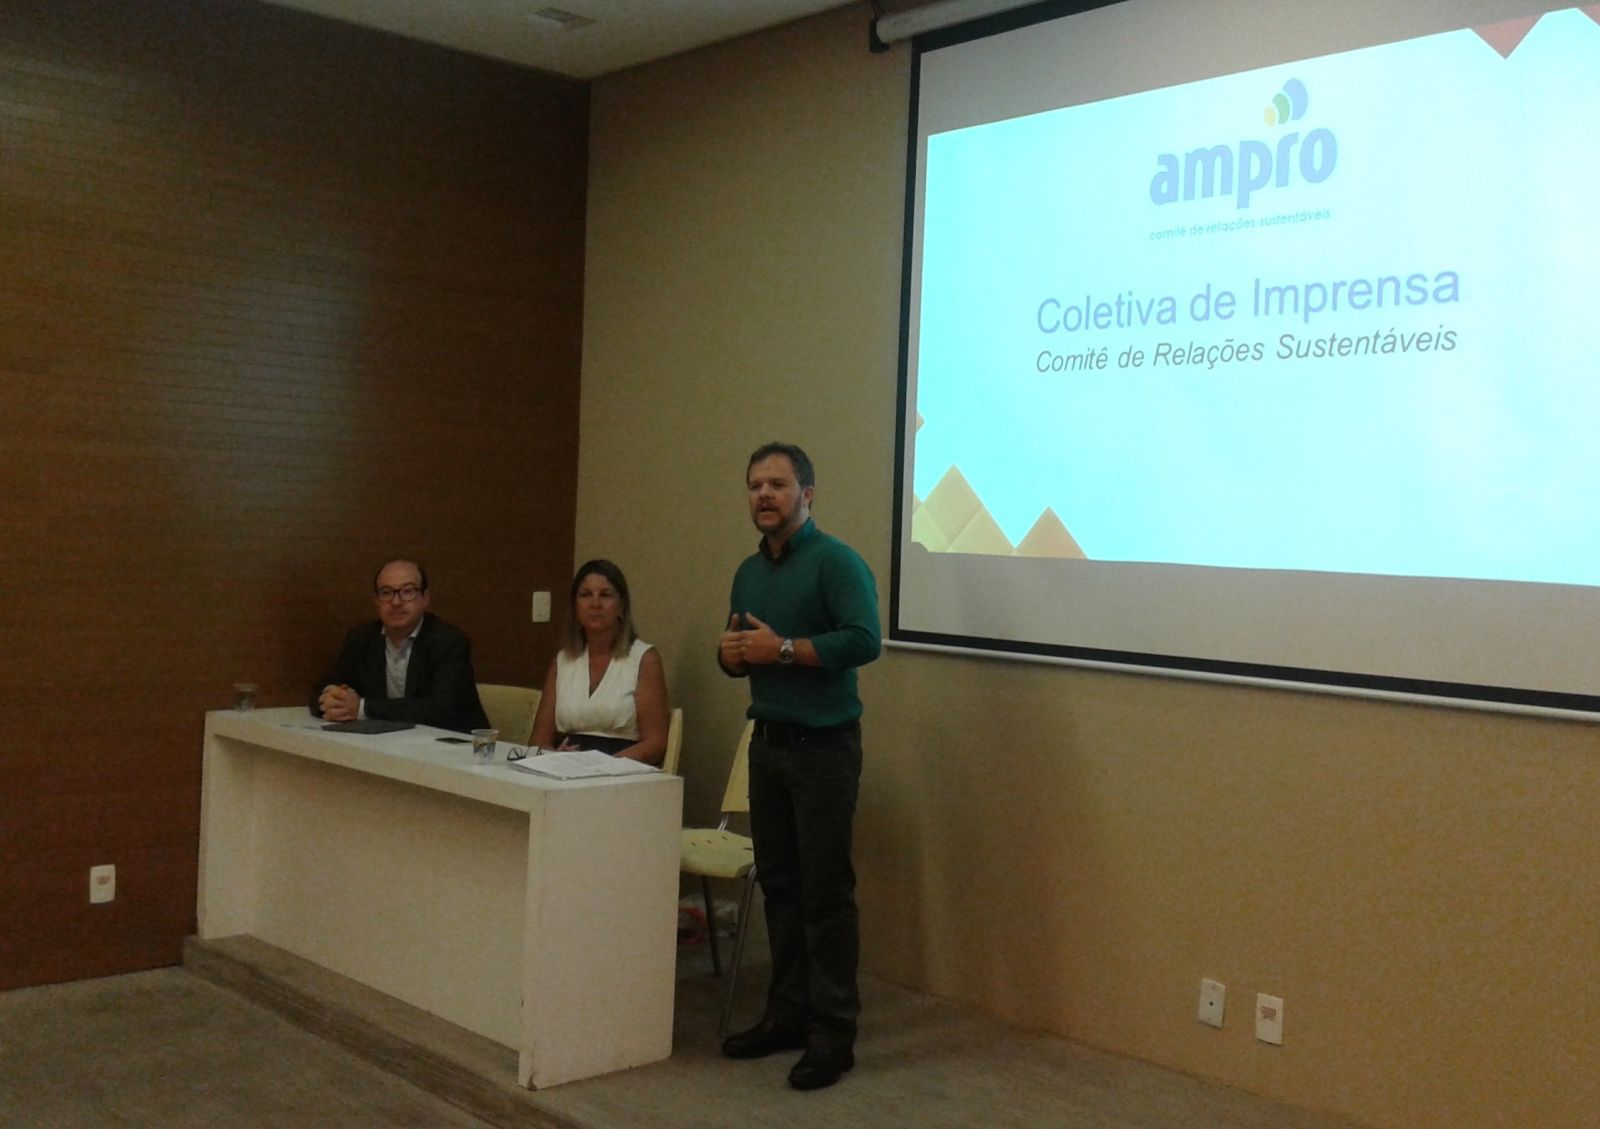 Ampro, Live Marketing, Marketing Promocional